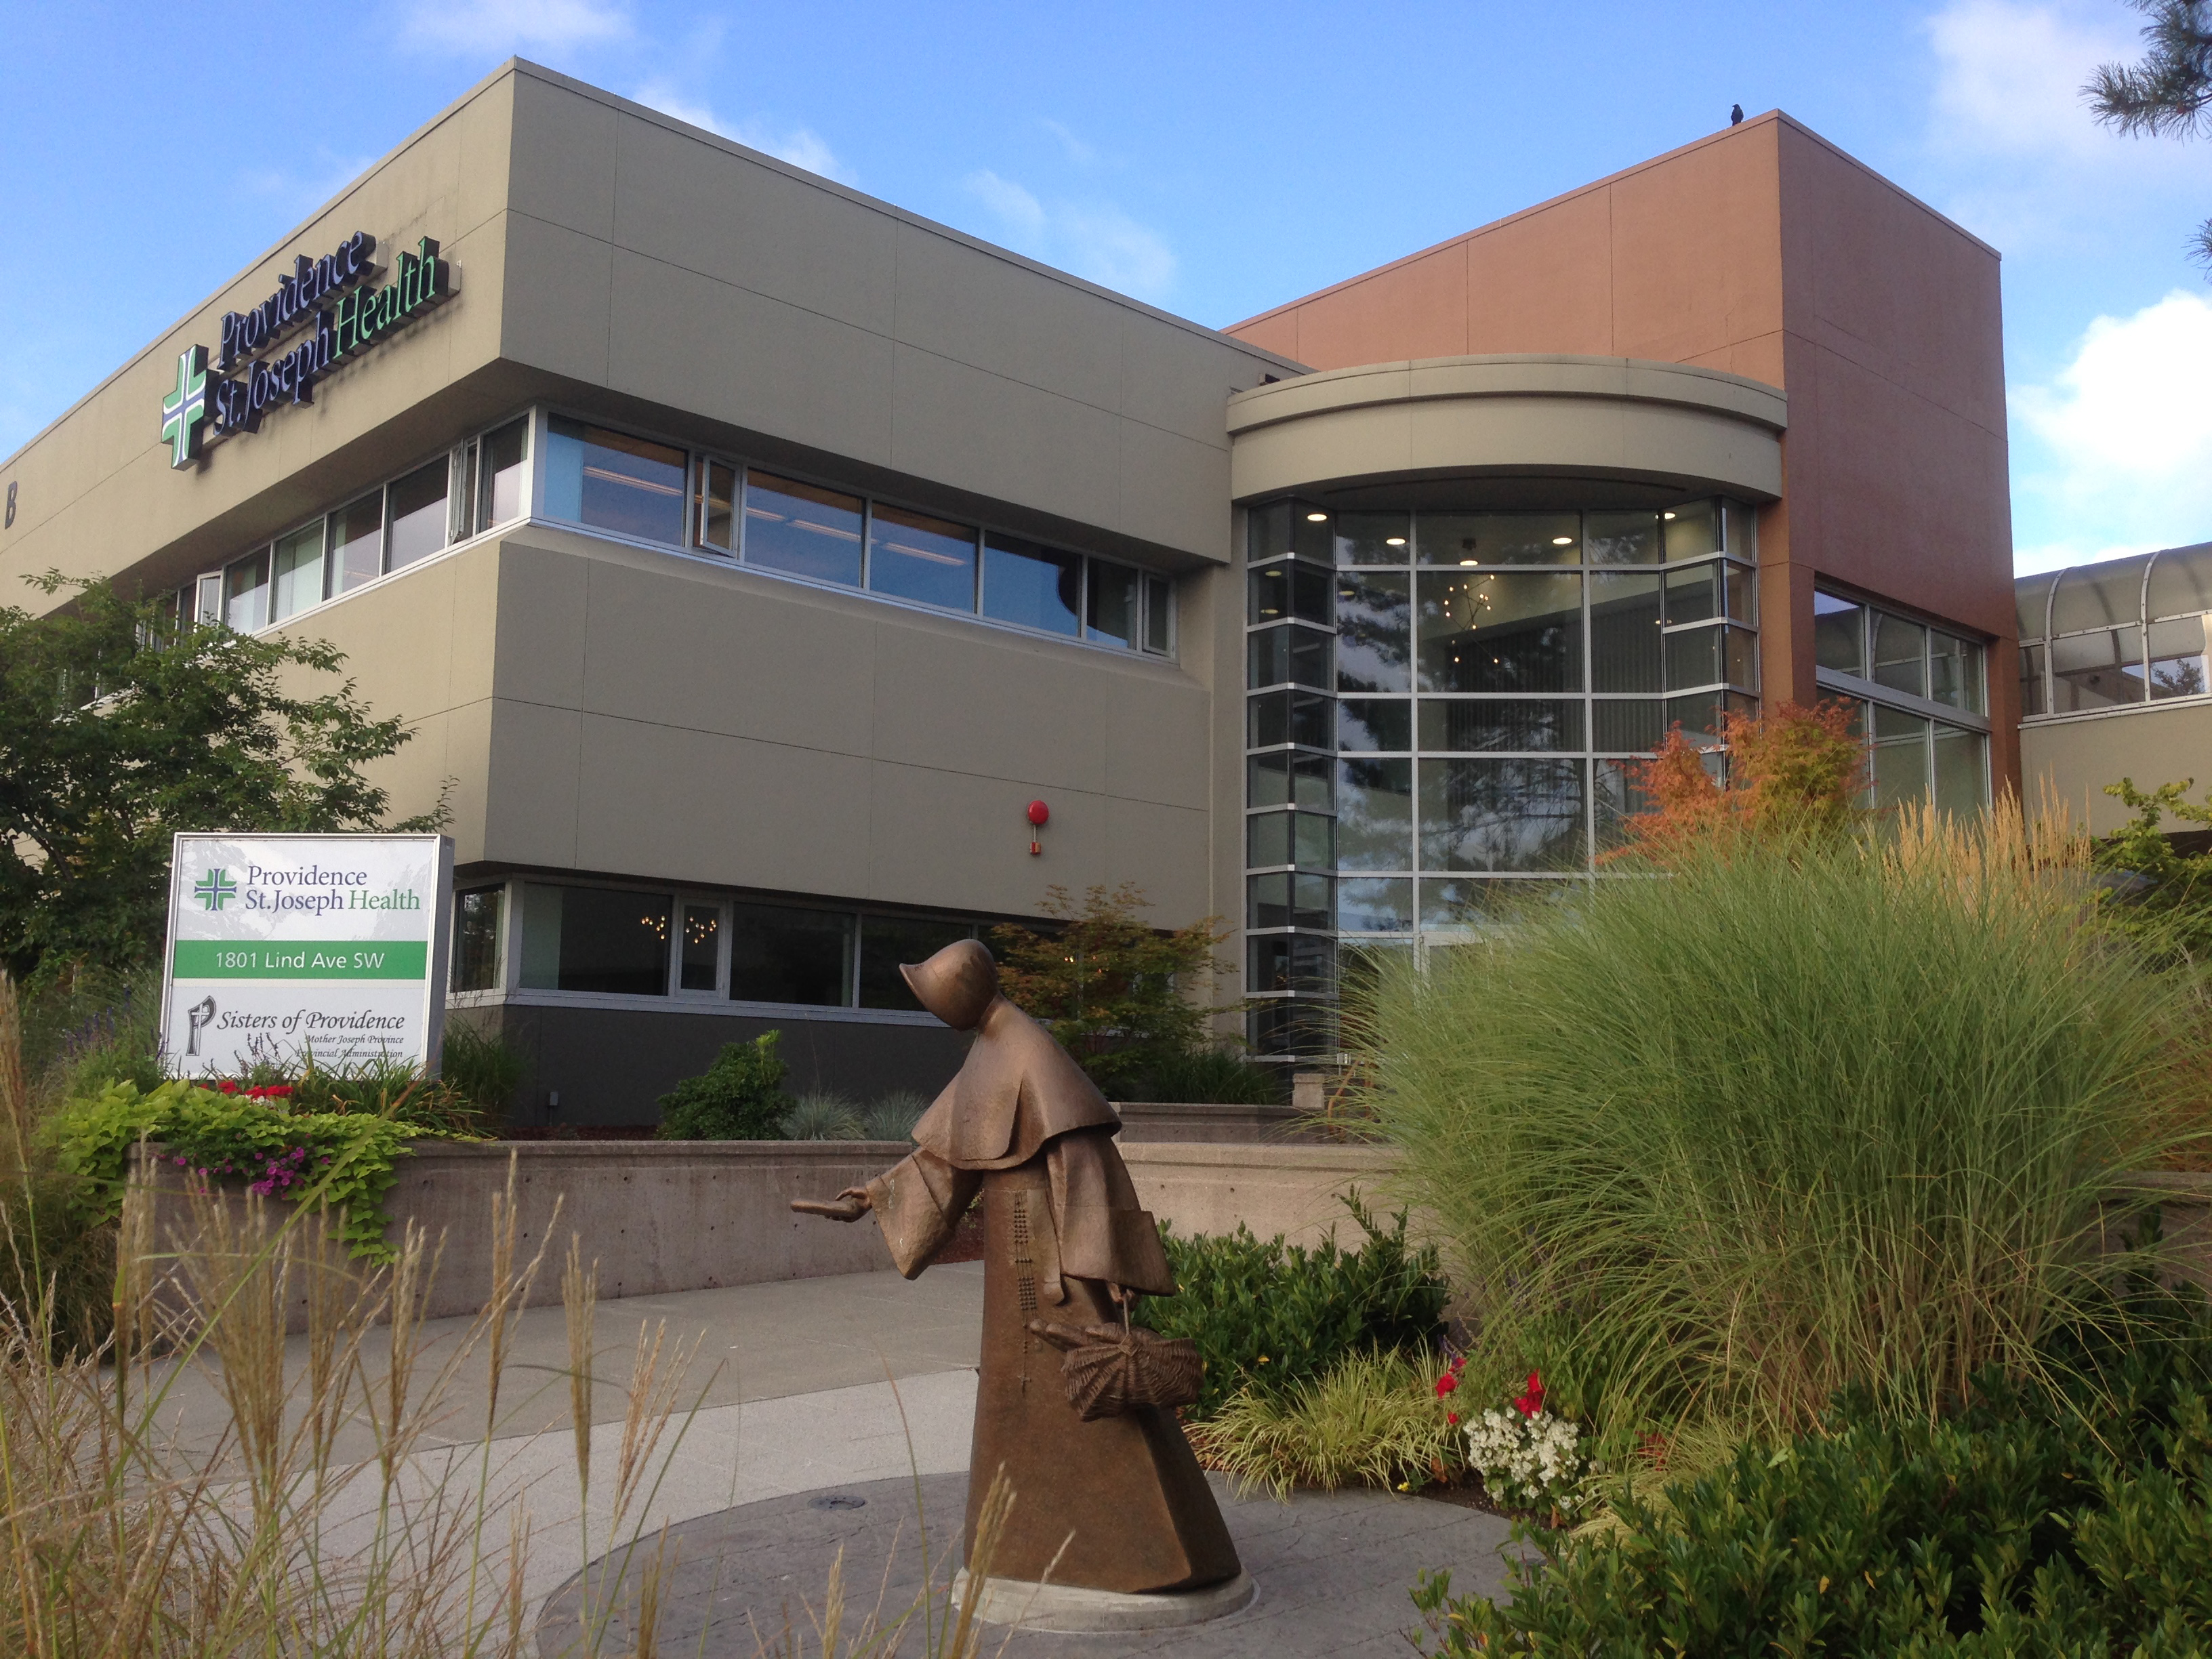 Providence posts $214M loss during first 9 months of 2020 due to COVID-19  impact   FierceHealthcare